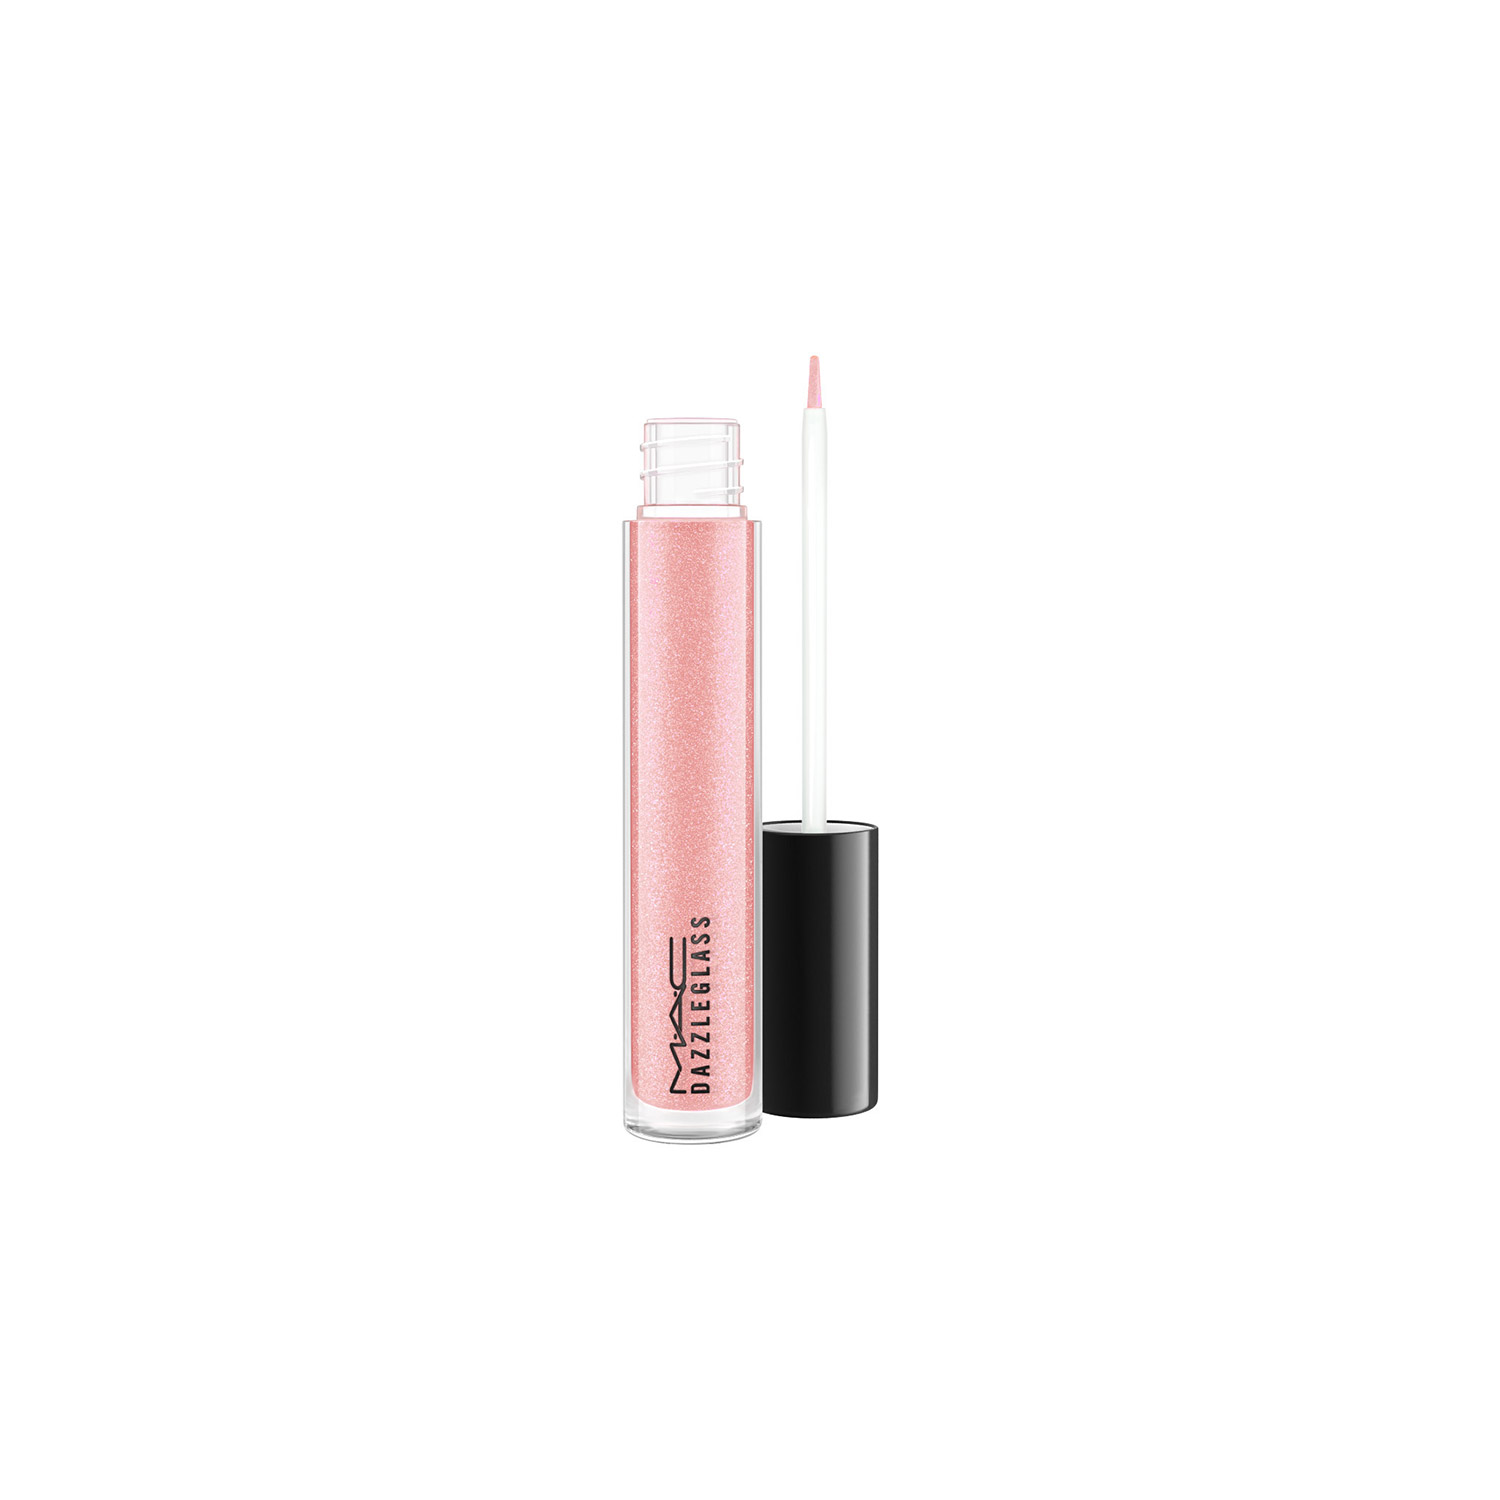 Dazzleglass Lip Gloss